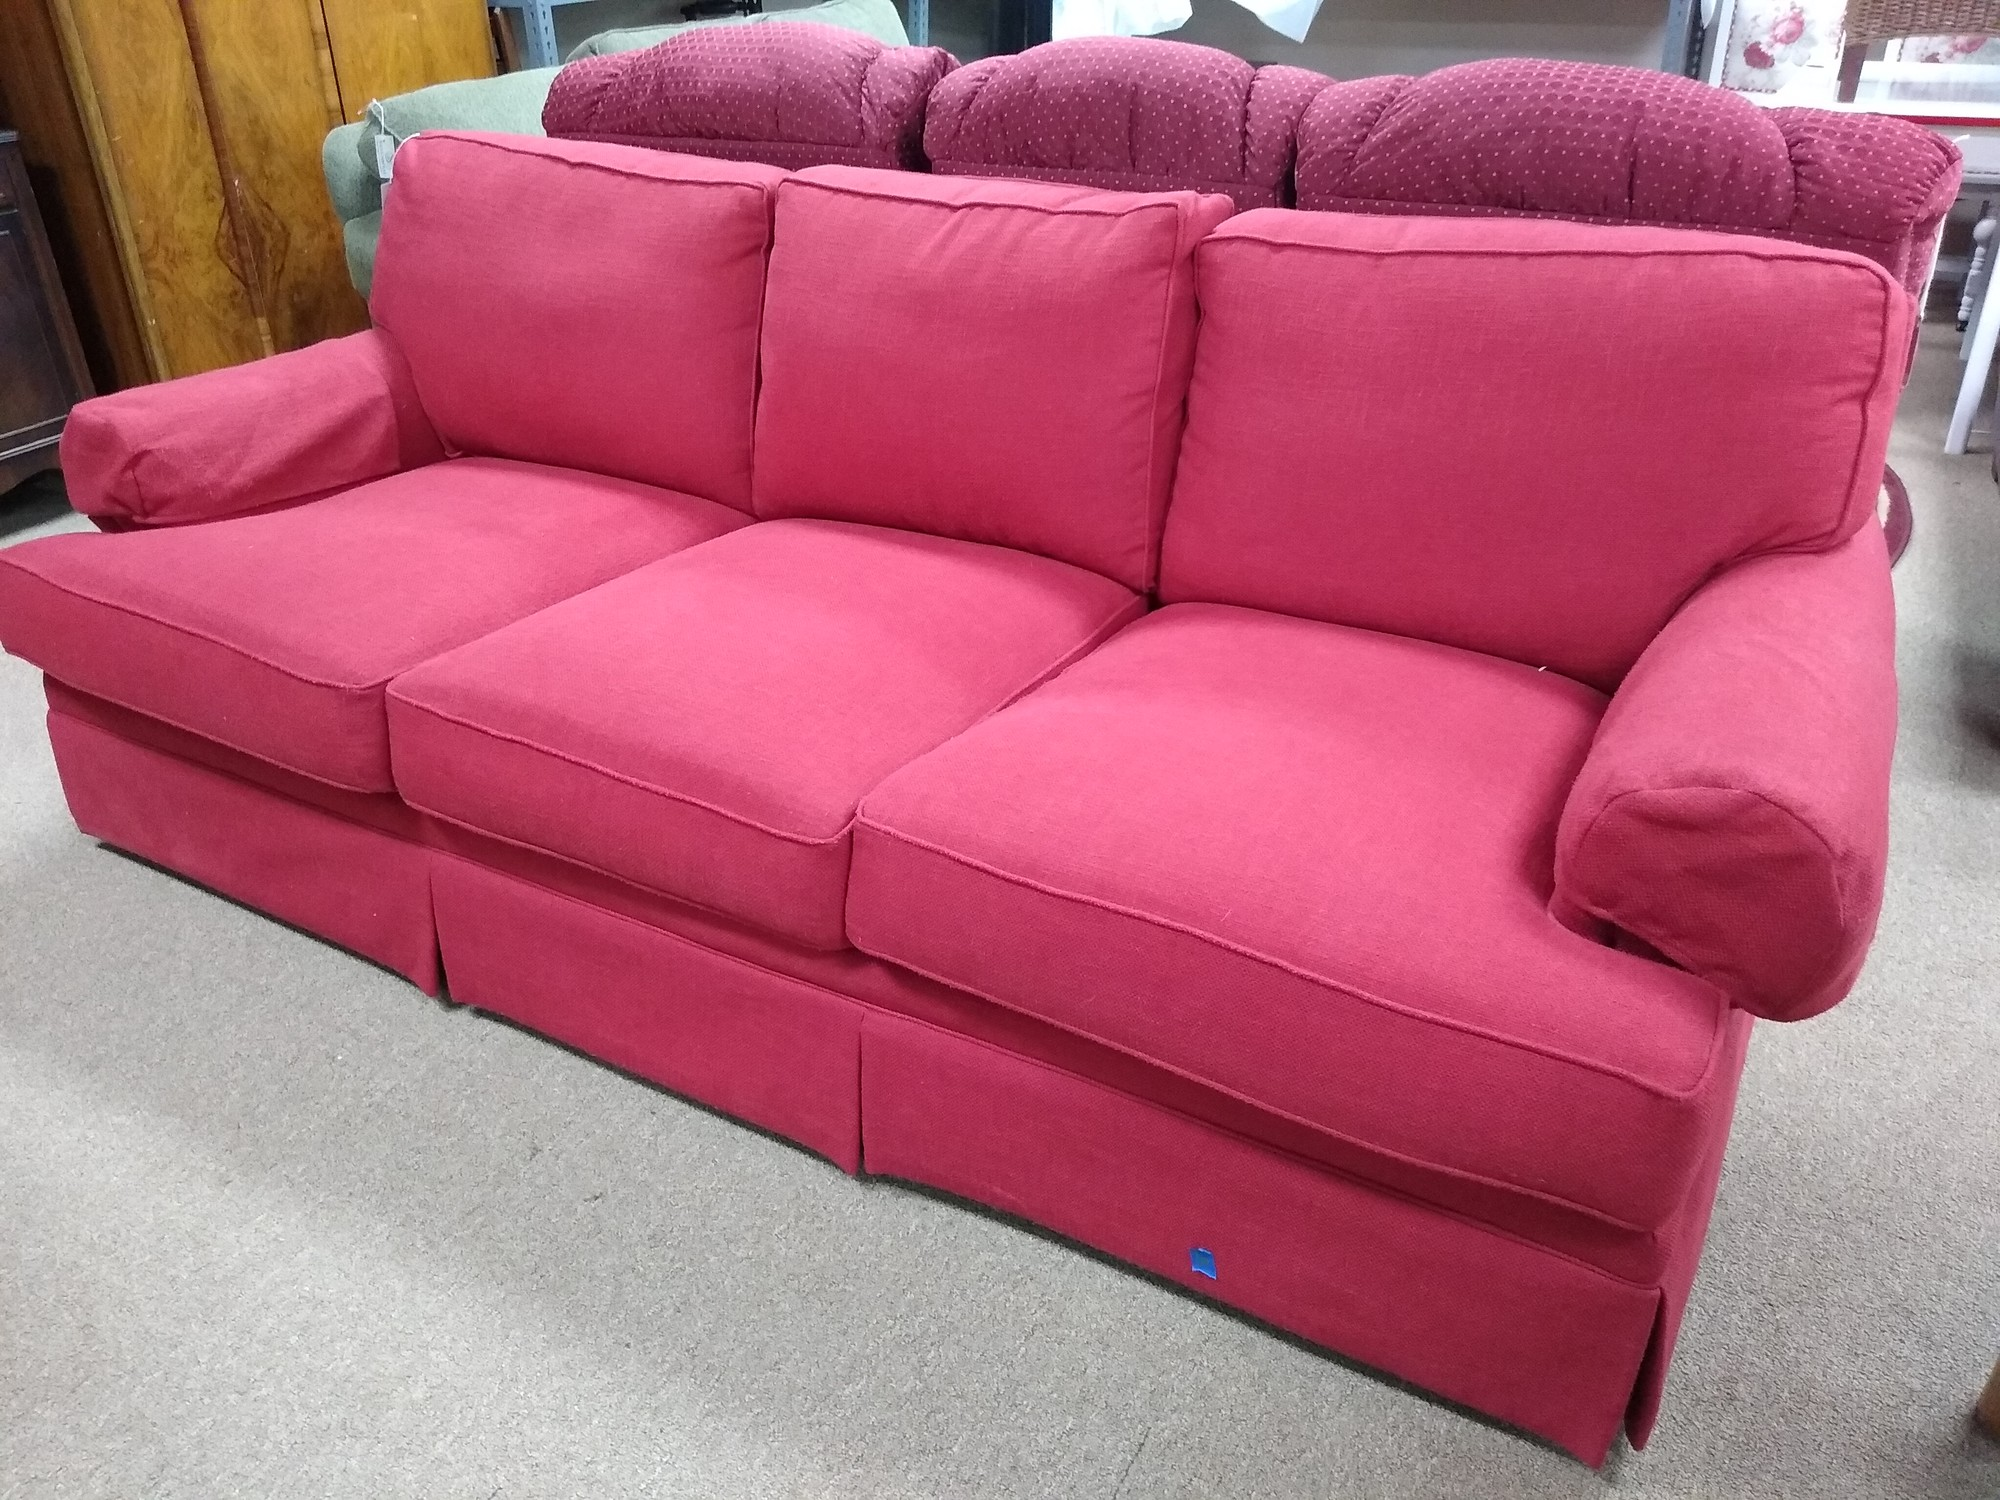 Sofa, Red, Size: 90""